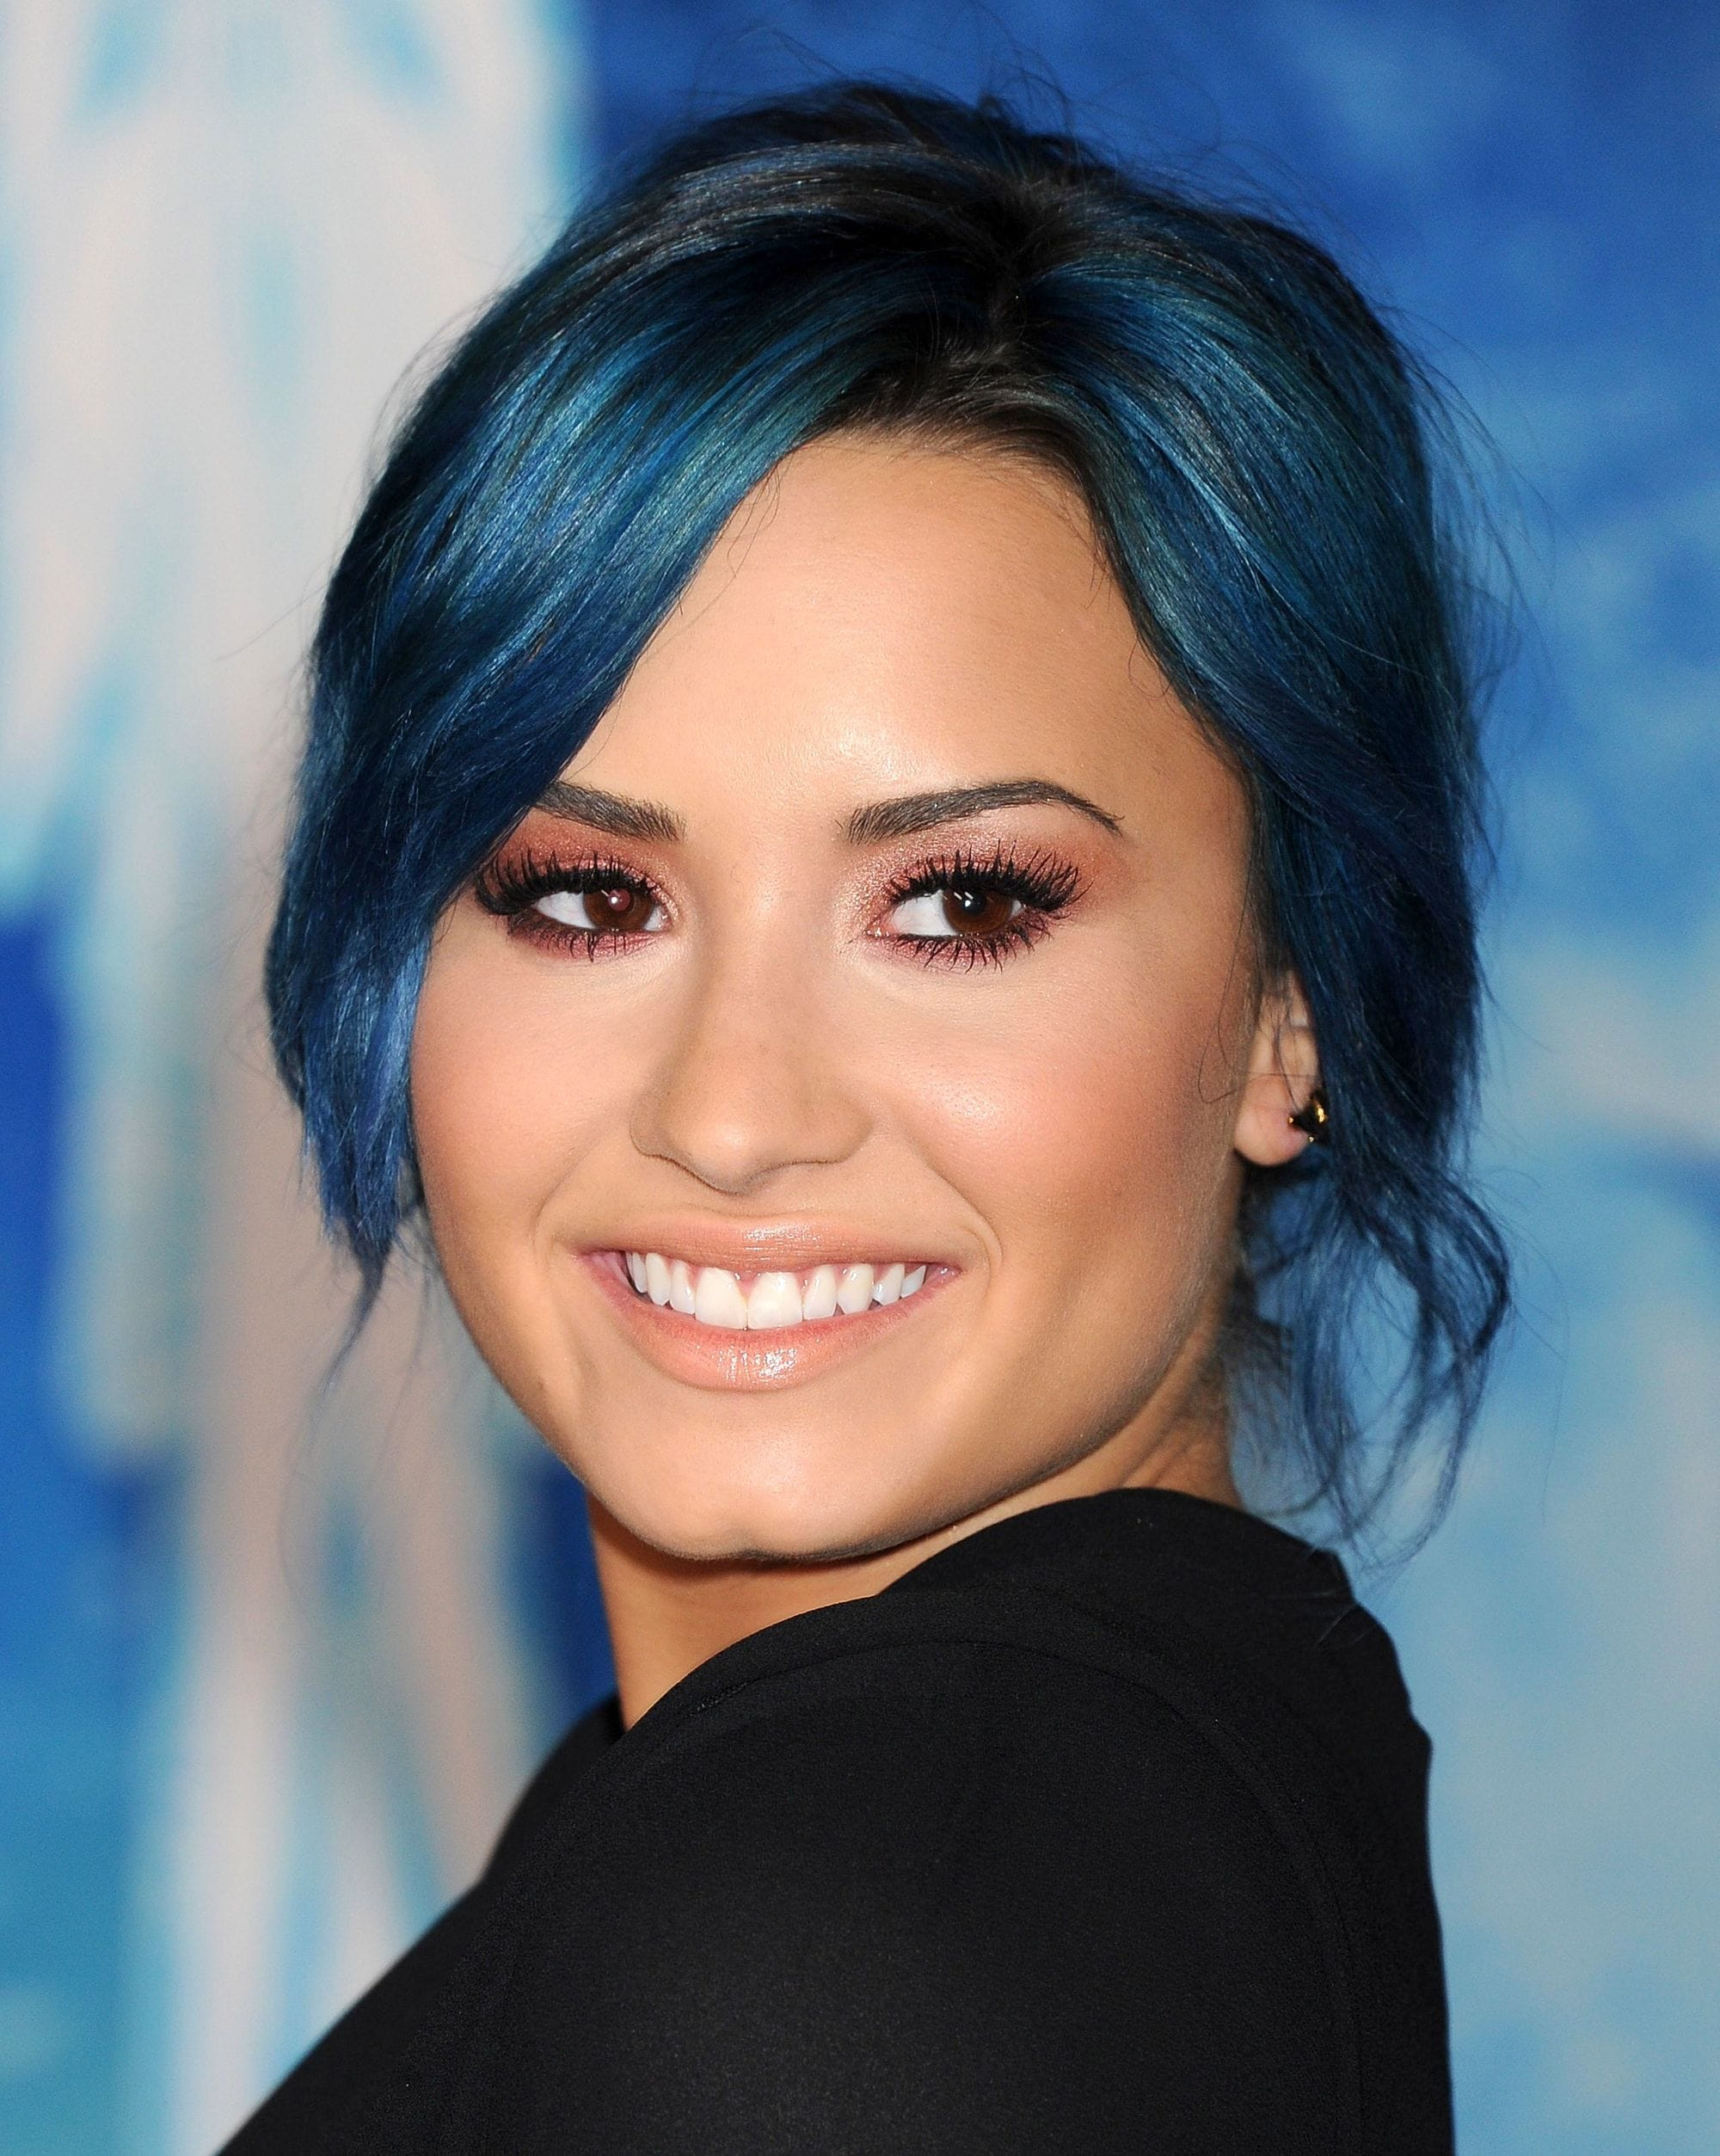 Blue hair: Demi Lovato with blue hair in an updo